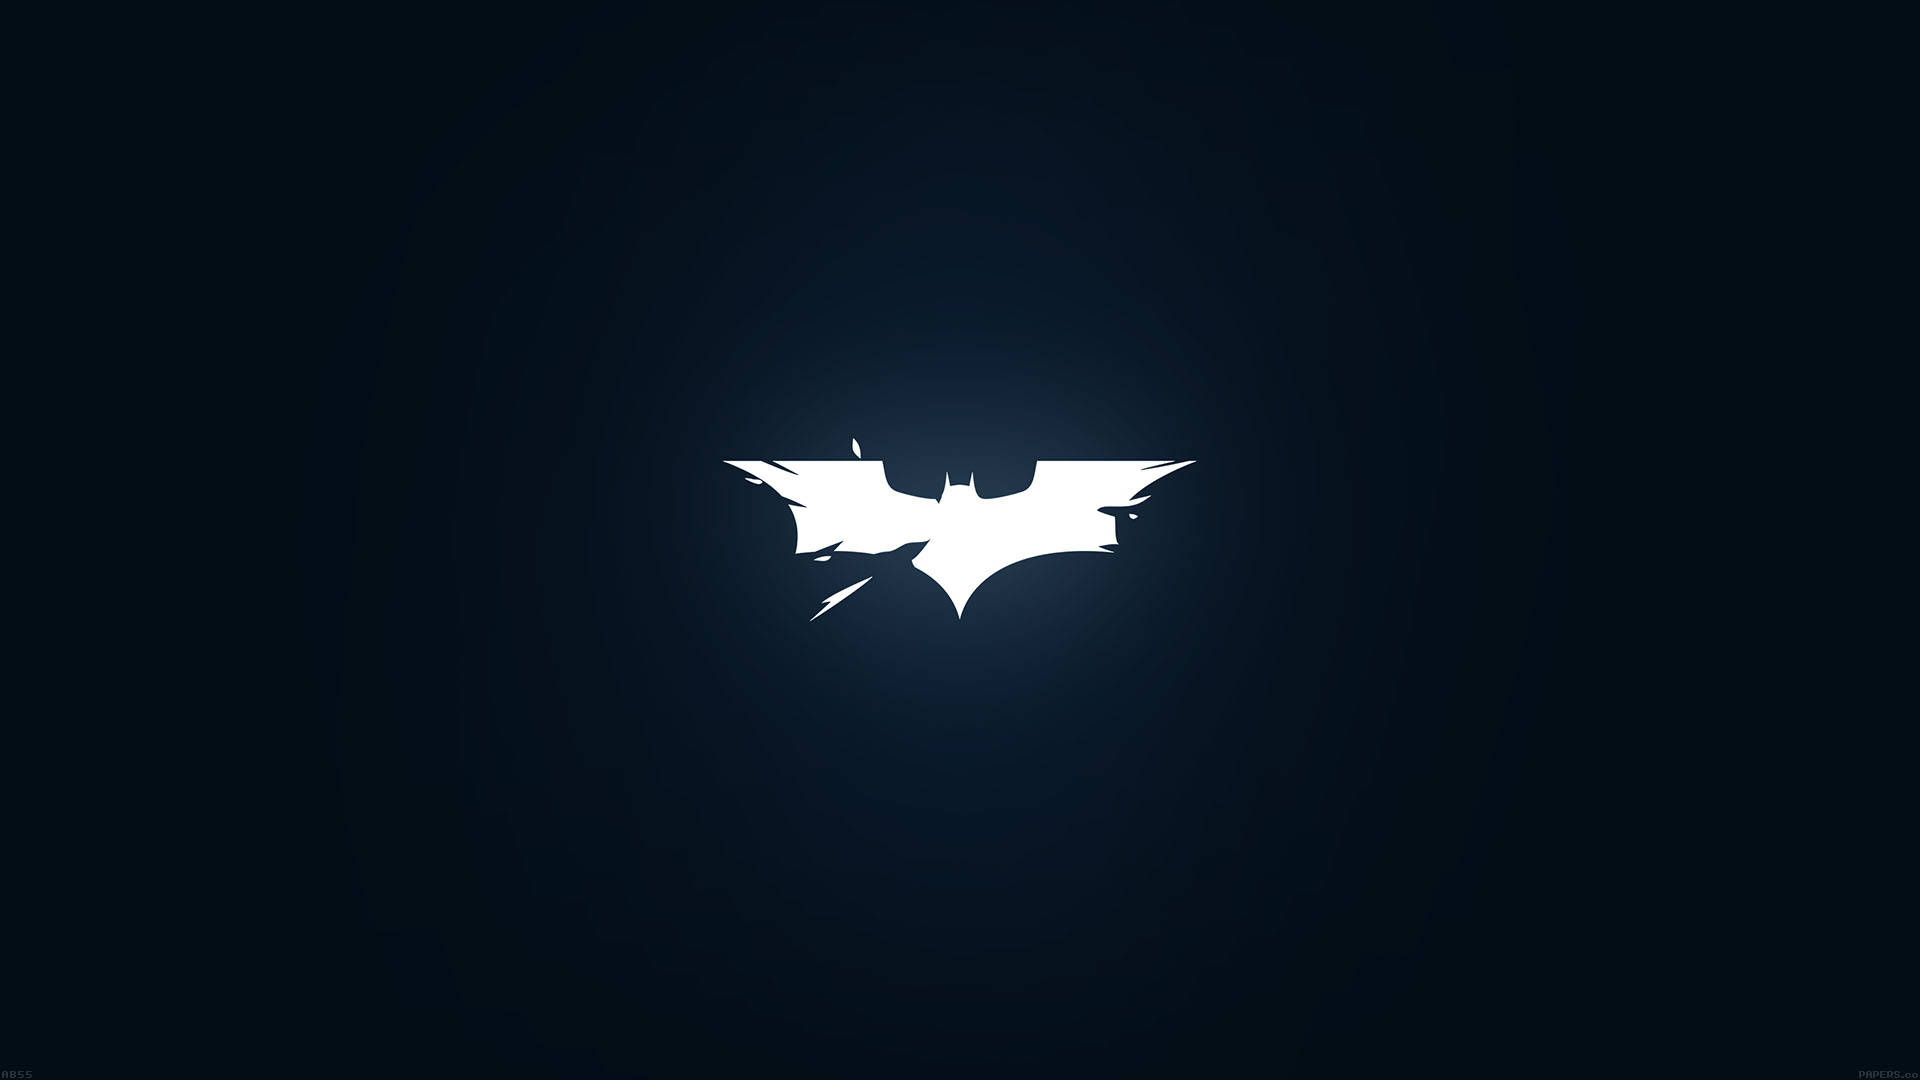 Shattered Iphone X Wallpaper Wallpaper For Desktop Laptop Ab55 Wallpaper Batman Logo